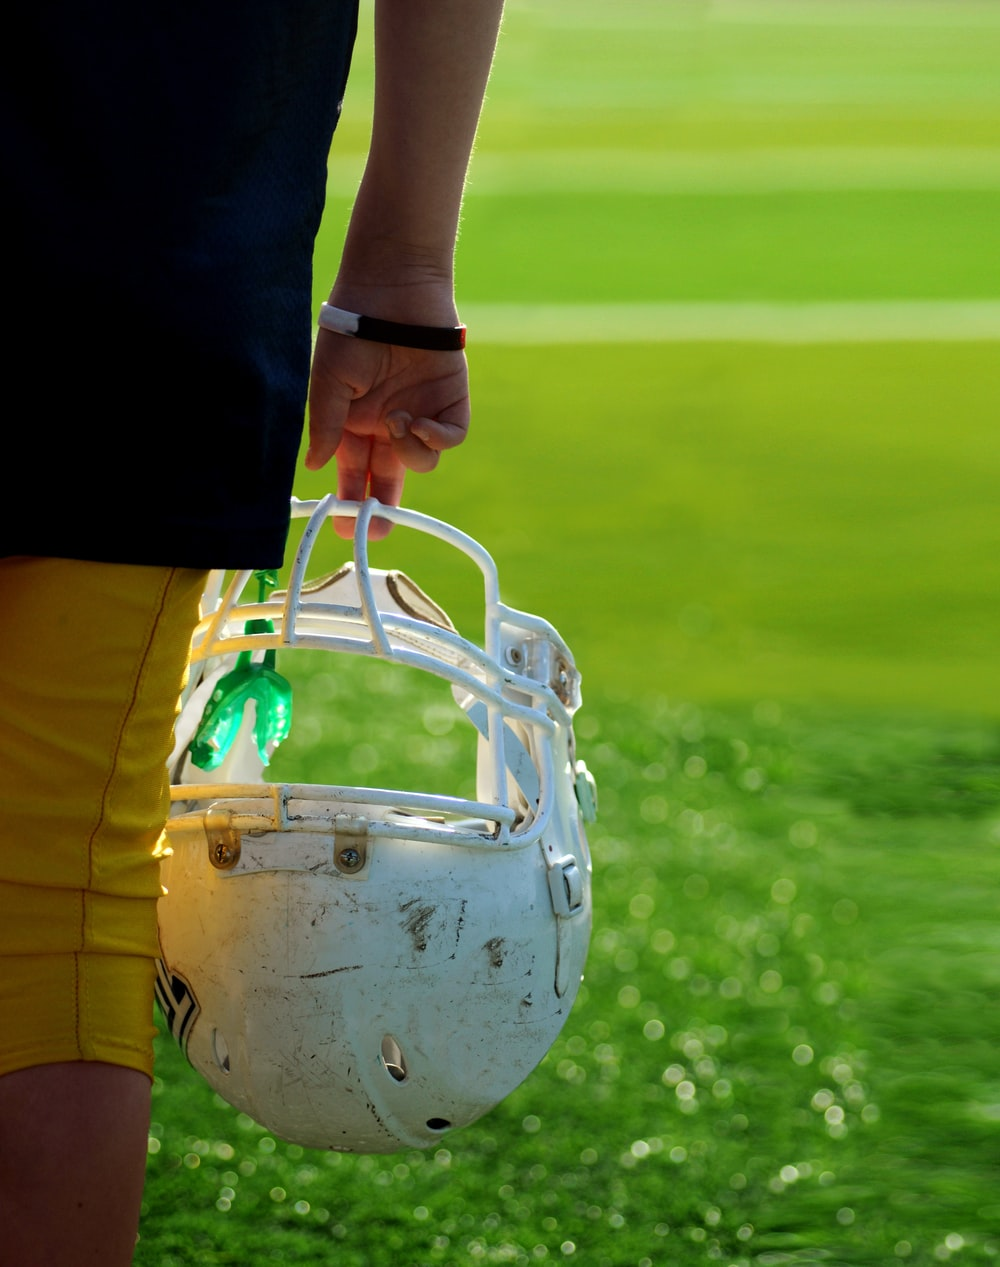 shallow focus photography of football player holding helmet